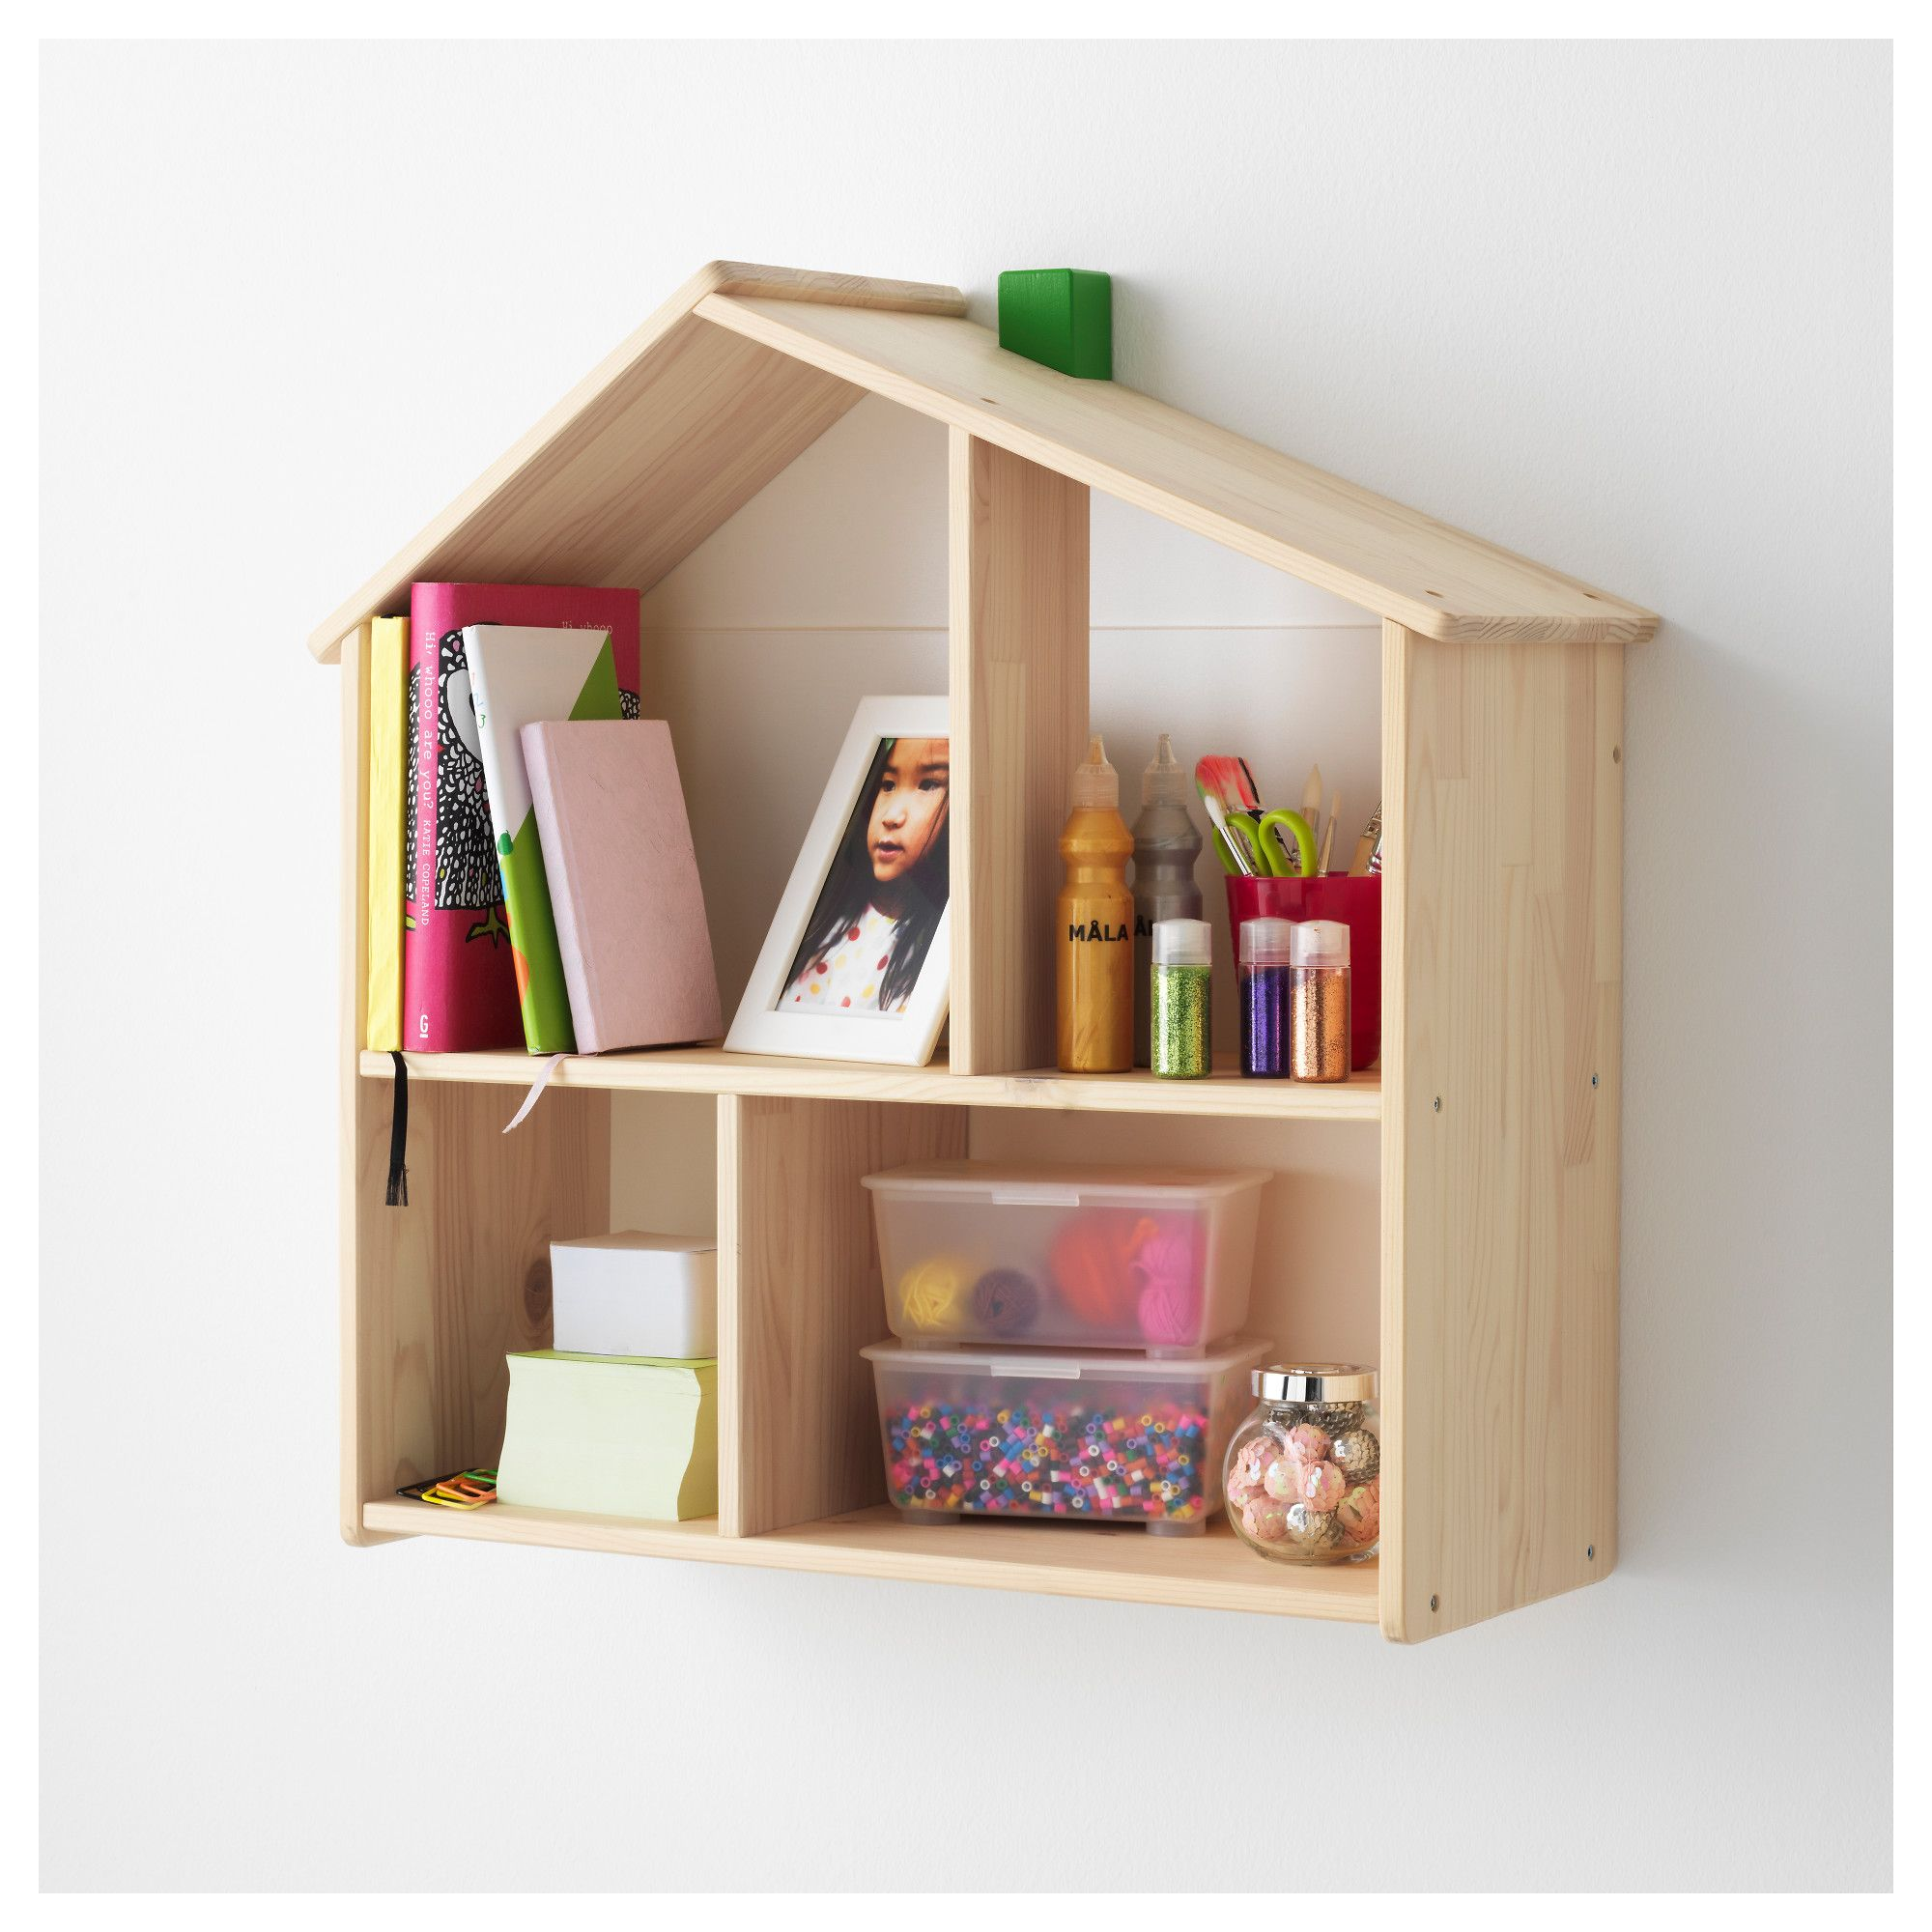 Ikea flisat doll house wall shelf sora s room wall for Casette in legno ikea